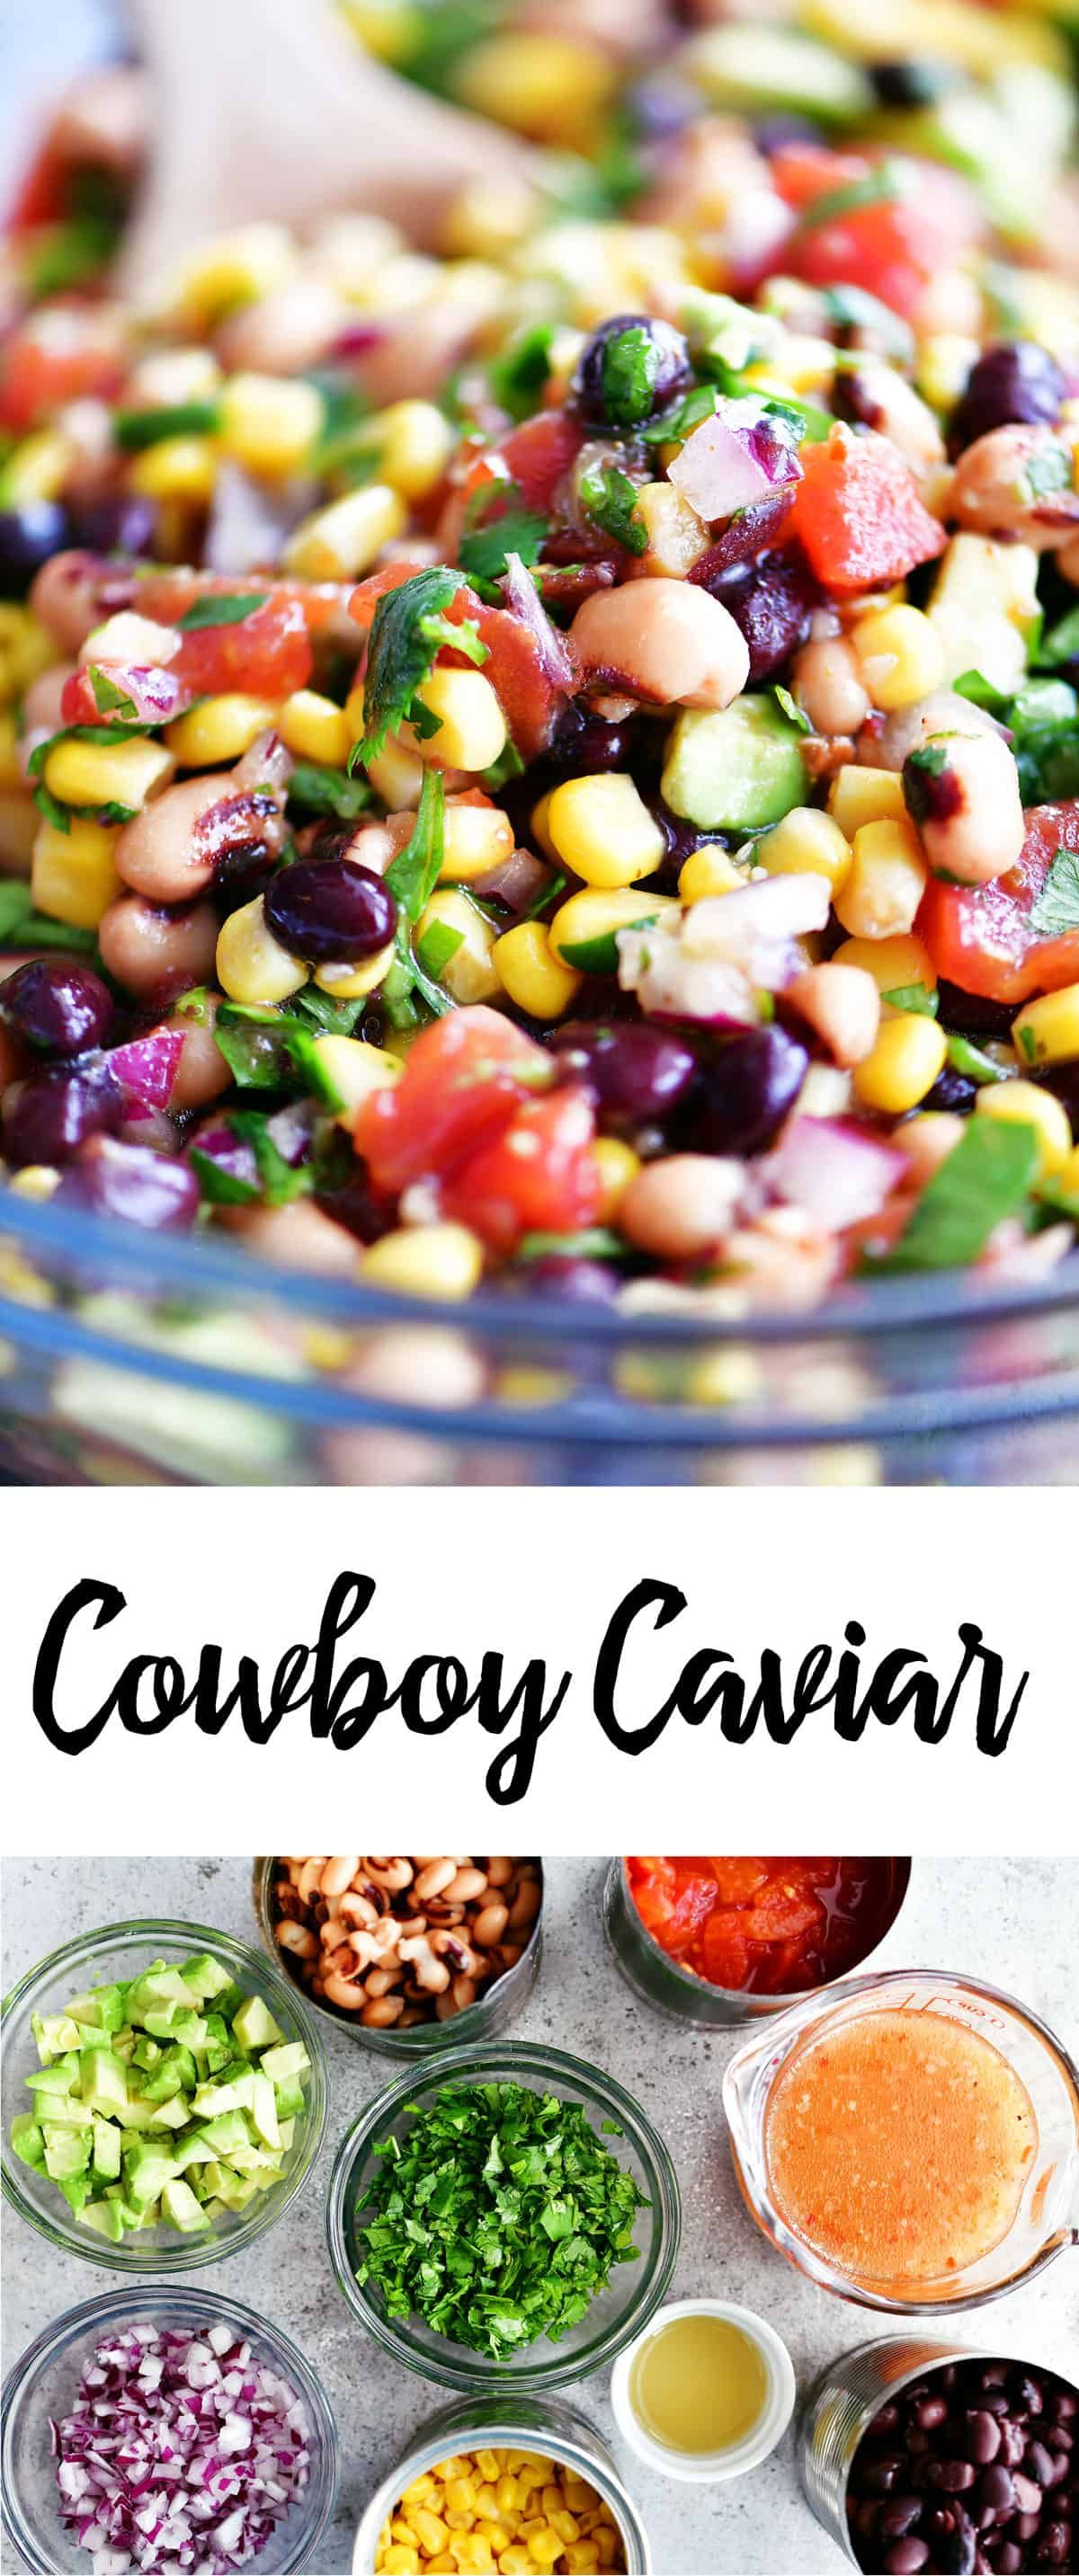 Cowboy Caviar Recipe - The Gunny Sack